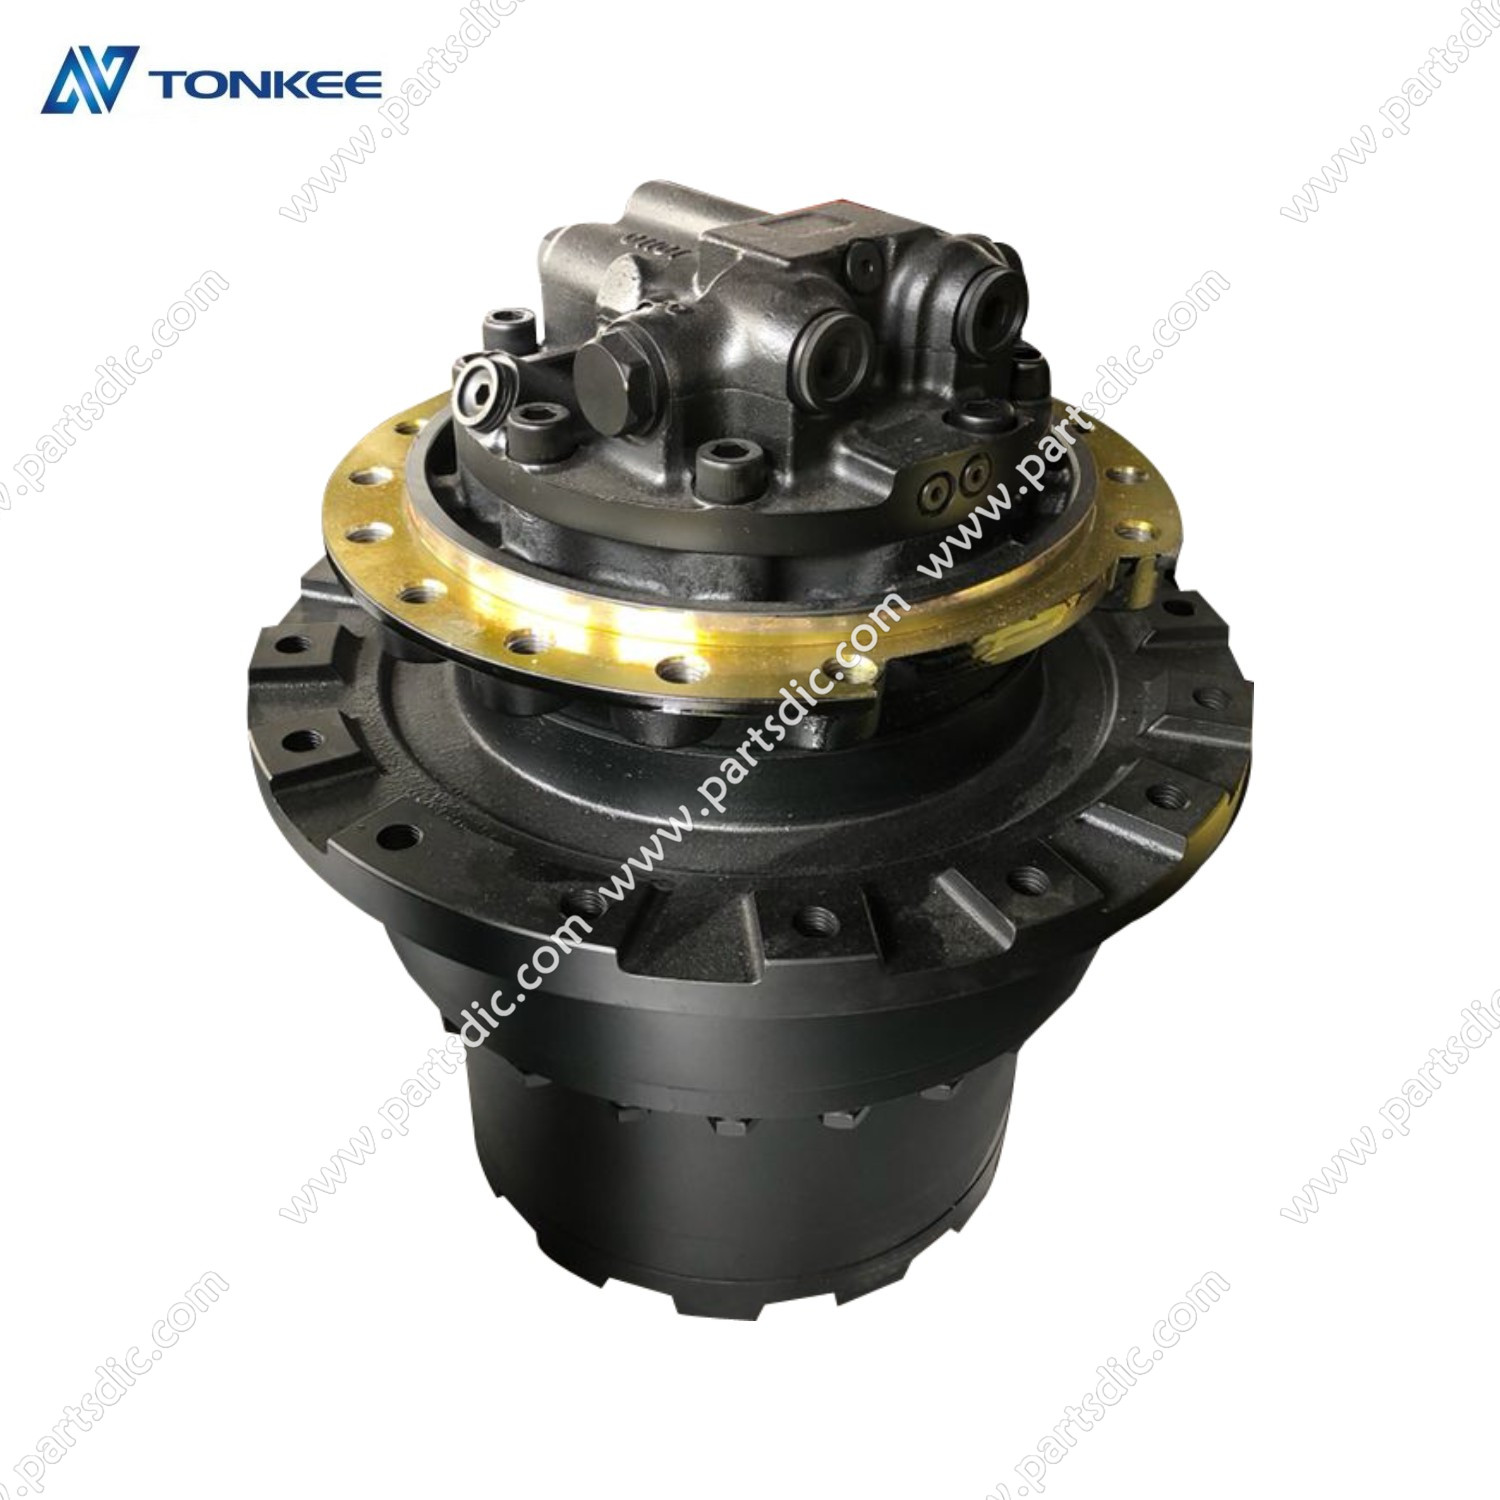 9233692 9269199 9261222 9239841 9250188 travel device ZX200LC-3 ZX210-3 ZX230-3 ZX240-3 ZX200-3F excavator travel motor Assy final drive group suitable for excavation